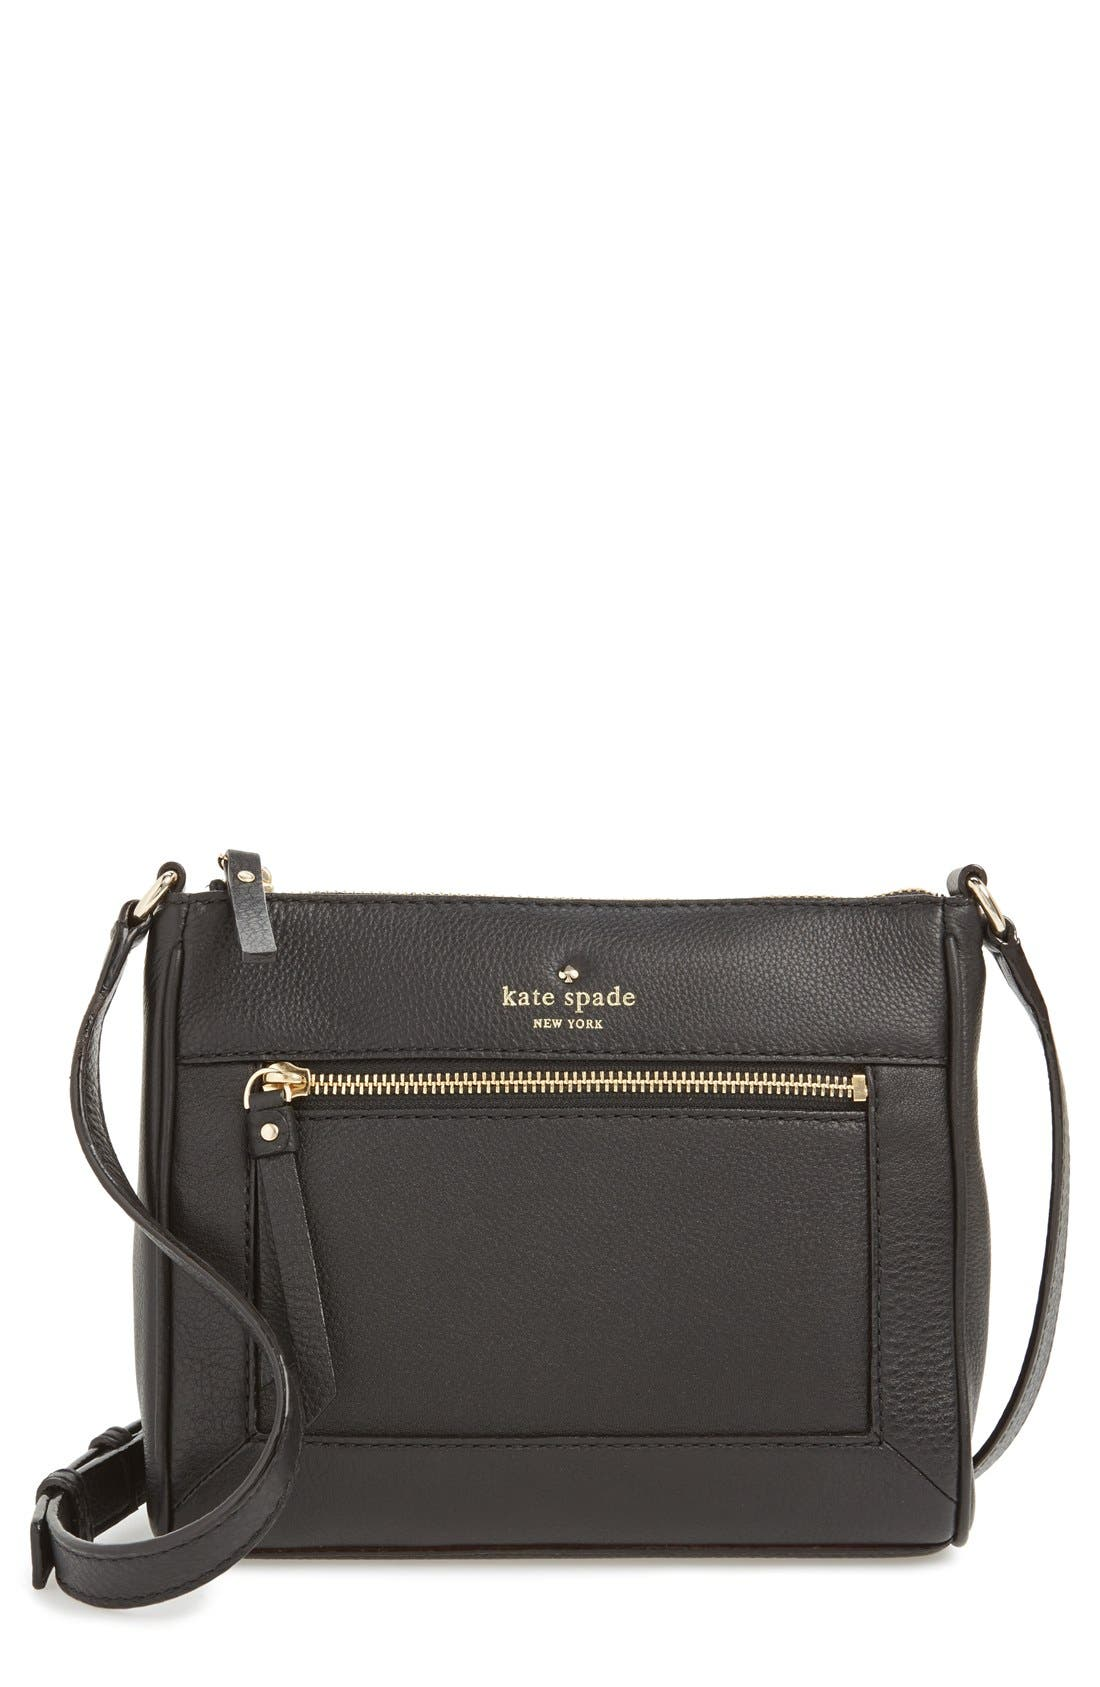 Alternate Image 1 Selected - kate spade new york 'cobble hill - deni' leather crossbody bag